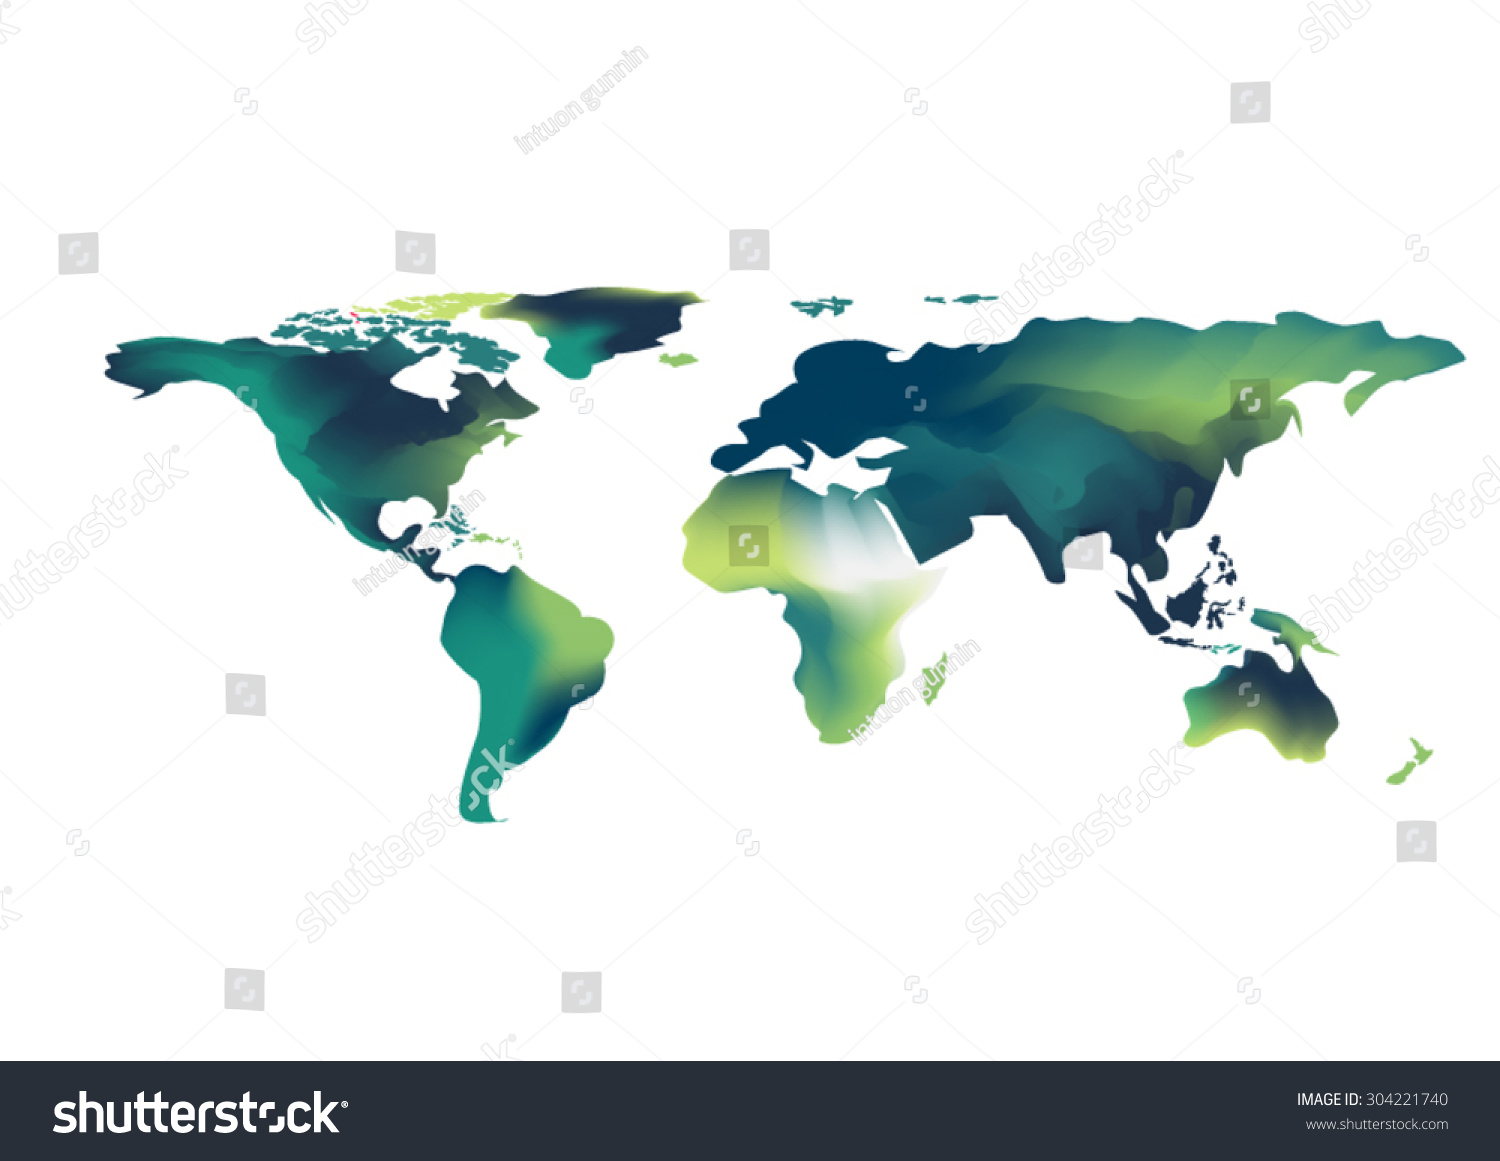 Abstract world map background water color stock vector 304221740 abstract world map background water color green and blue tone design style vector background elements of gumiabroncs Gallery